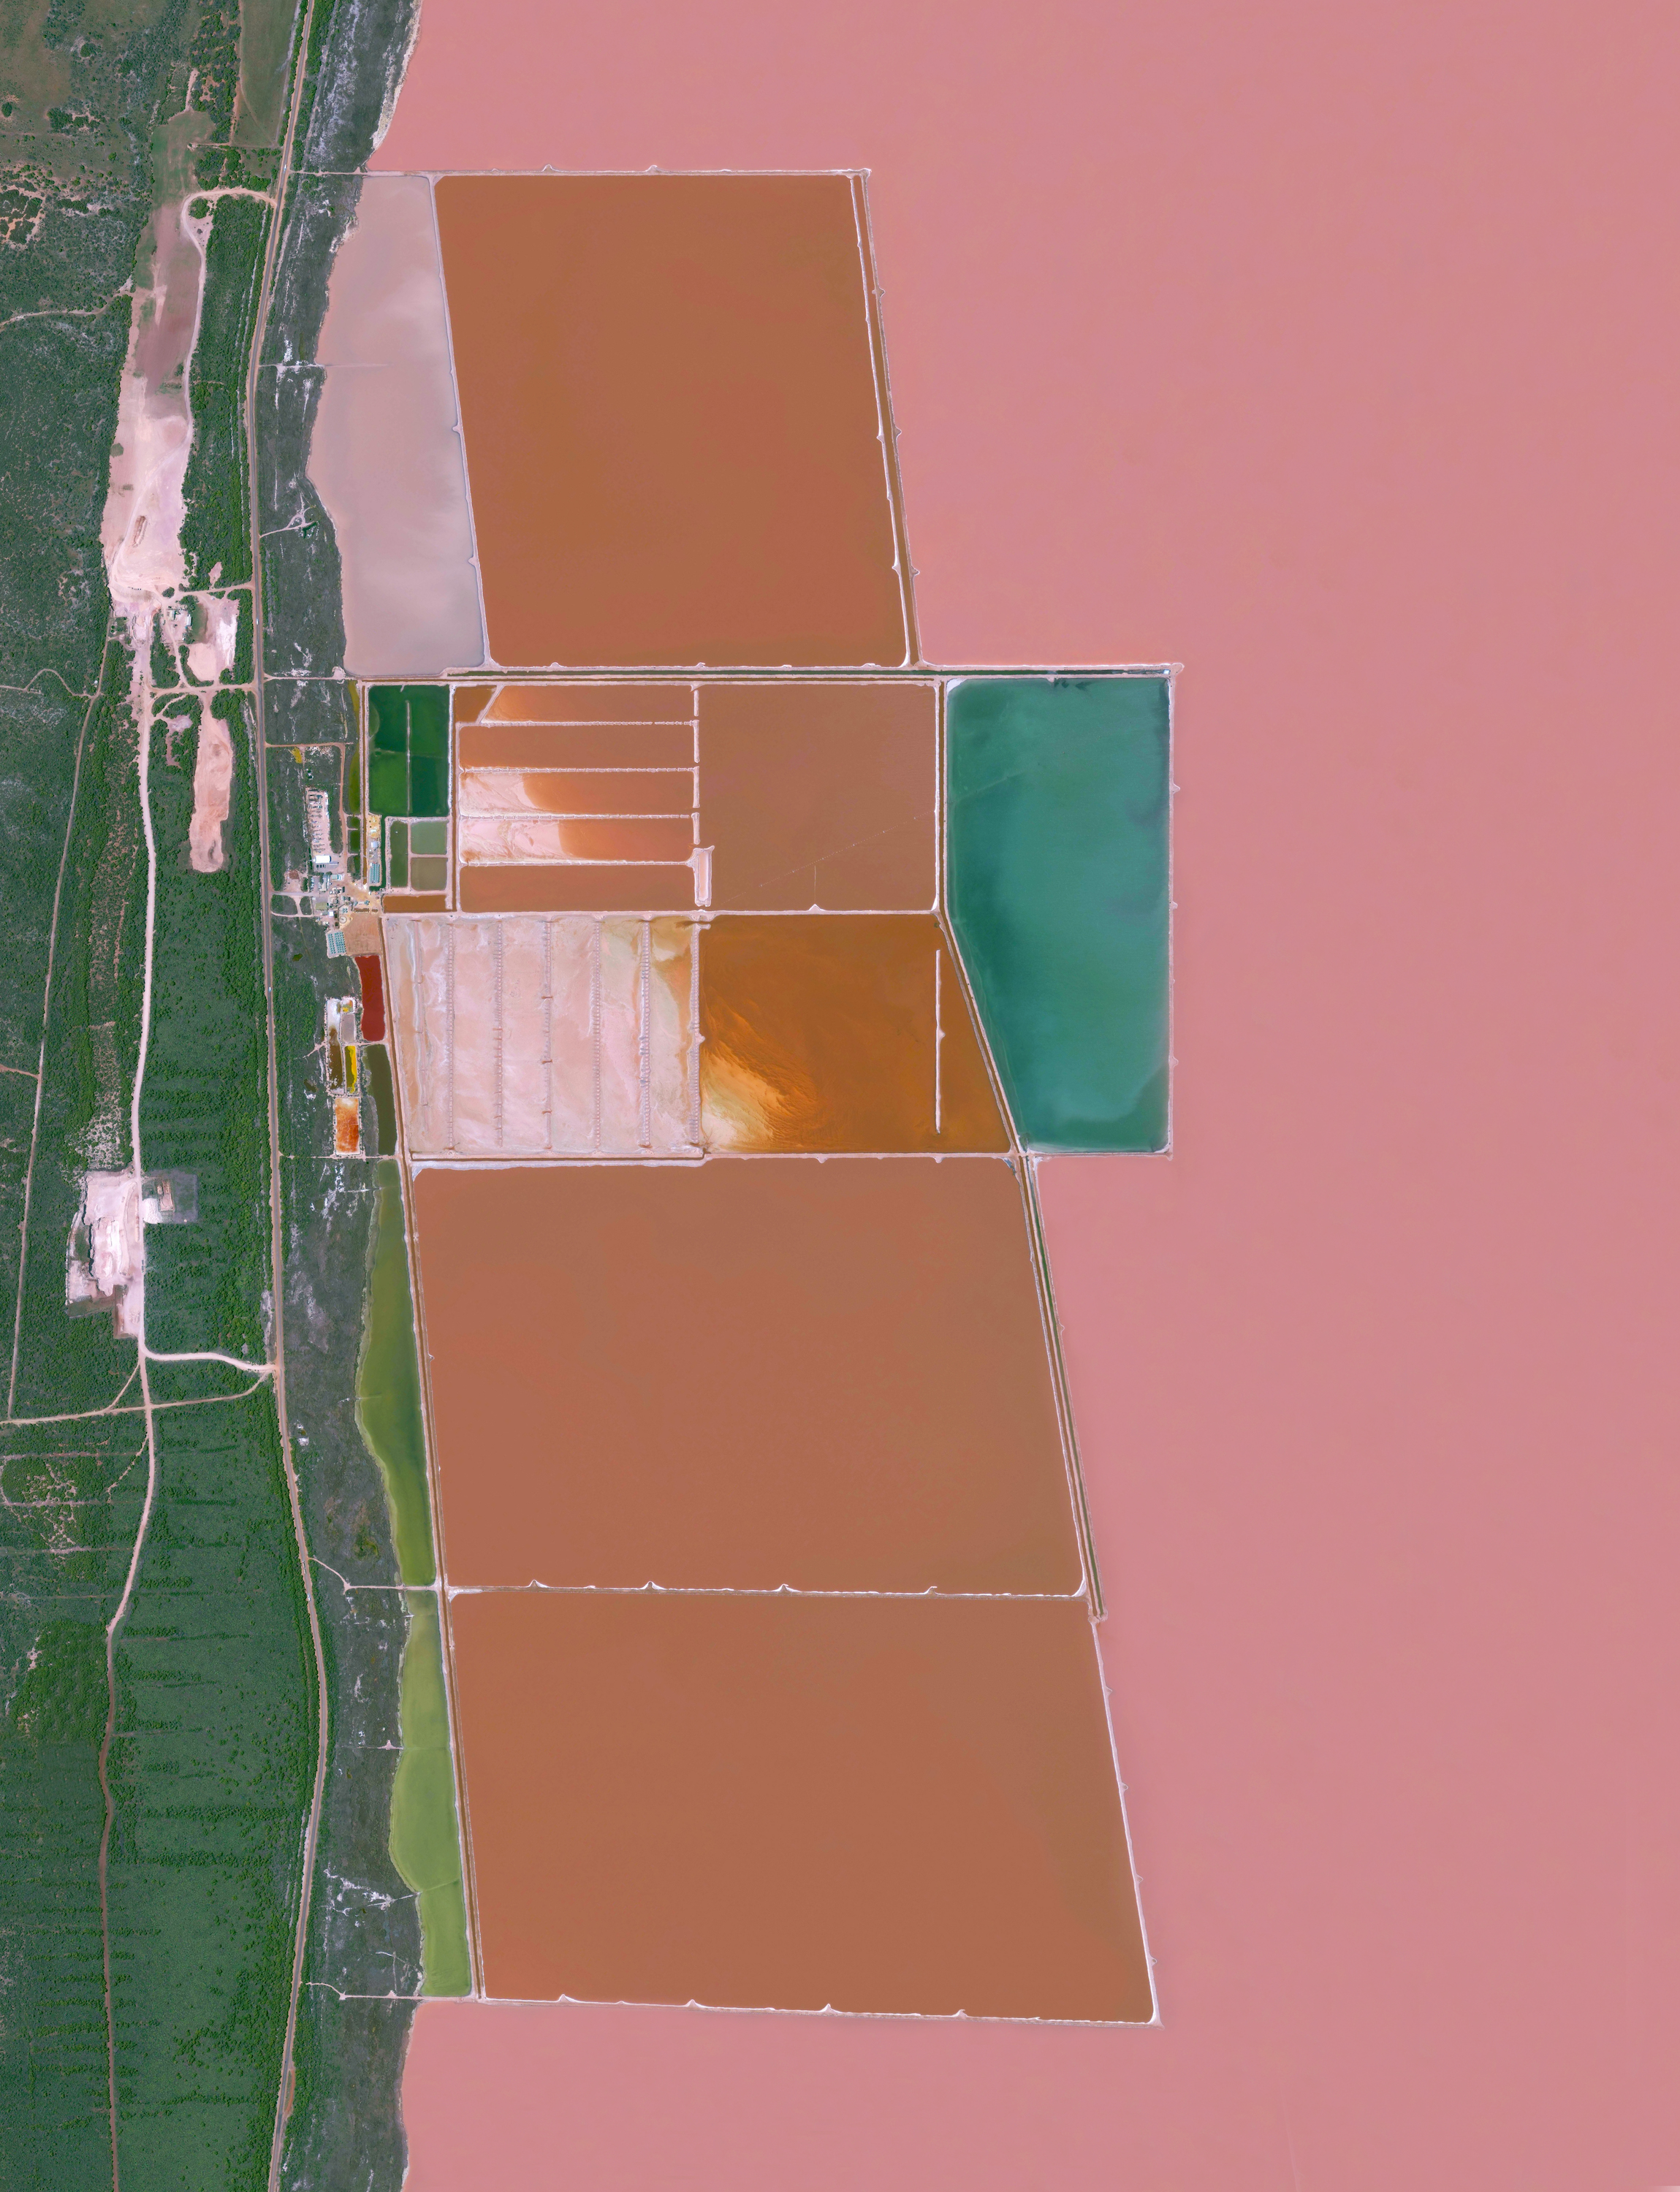 """12/9/2016   Hutt Lagoon   Western Australia  –28.172005°, 114.261002°    Here's a never-before-seen image from """"Overview.""""Hutt Lagoon is a massive lake in Western Australia that gets its pink color from a particular type of algae - Dunaliella salina - that grows in the water. The lagoon contains the world's largest microalgae production plant, where the algae is farmed for its beta-carotene, which is then used as a food‑coloring agent and source of Vitamin A in other products."""